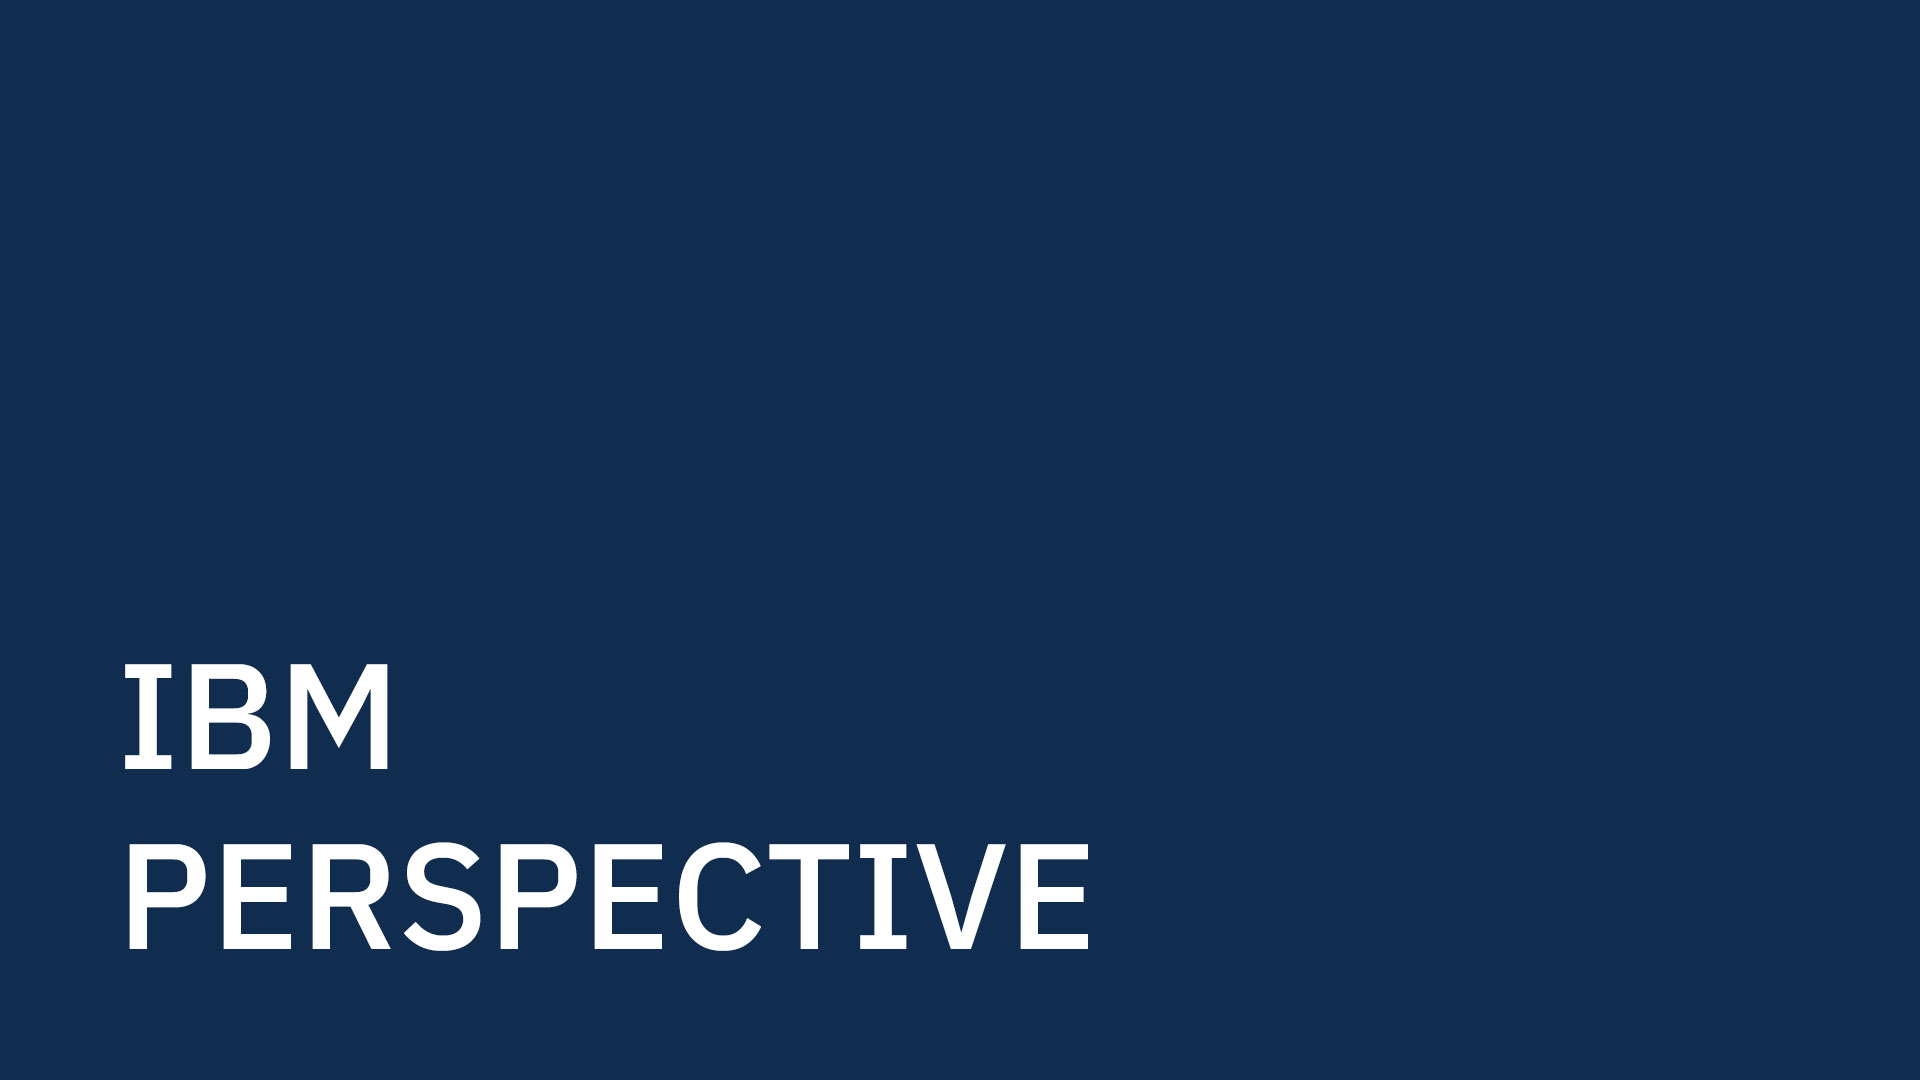 IBM Perspective in white text on a navy blue background